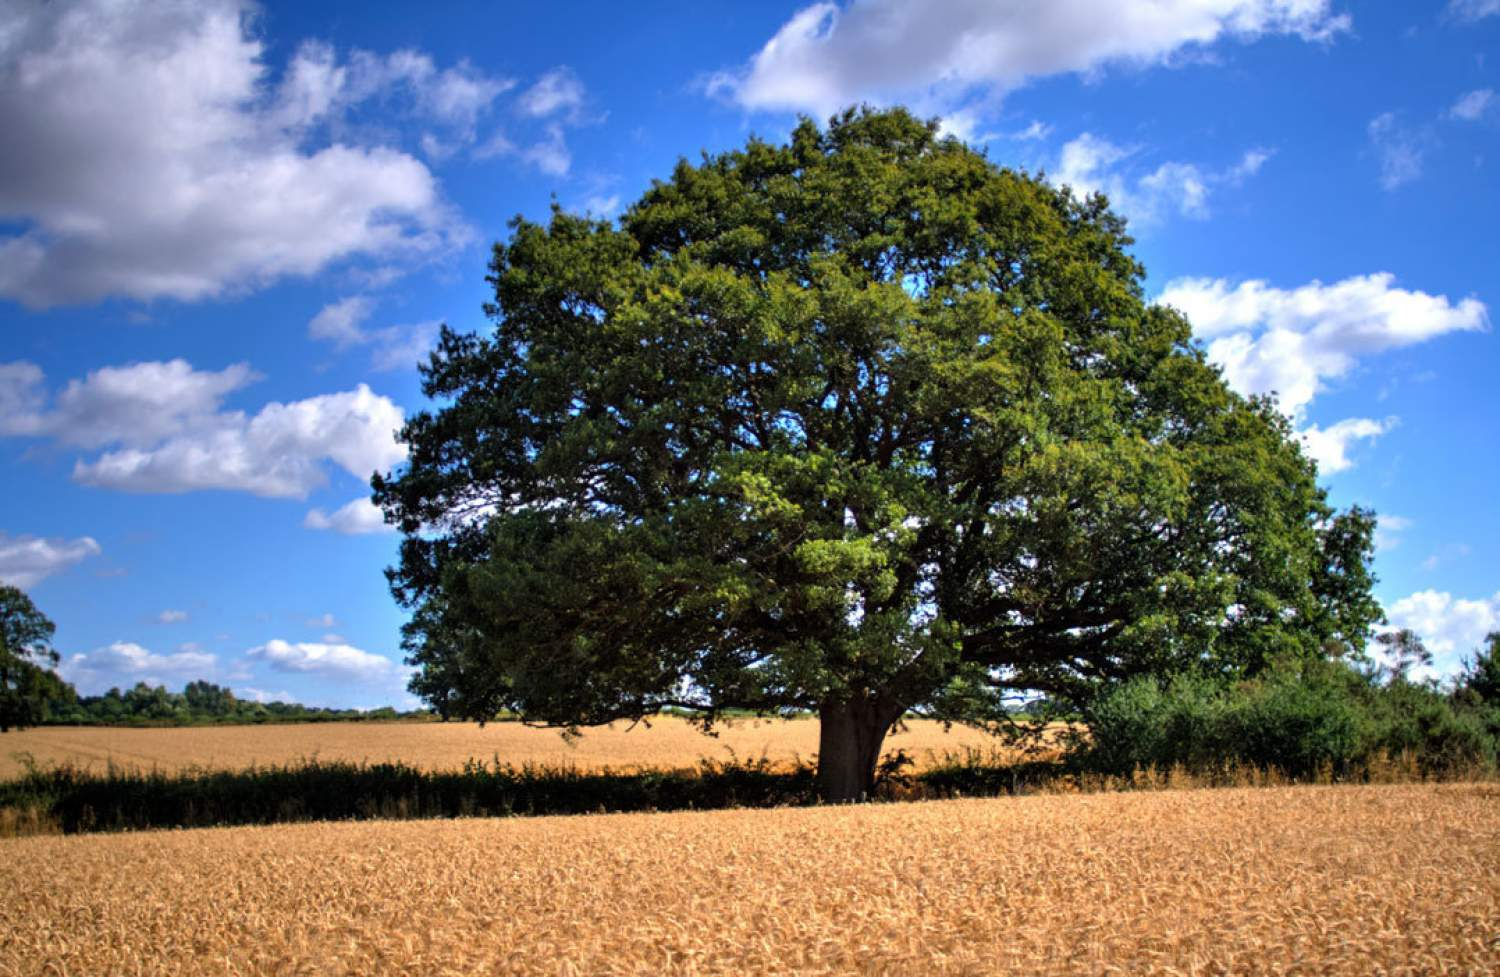 Tree standing in a wheat field of Cotswolds, England